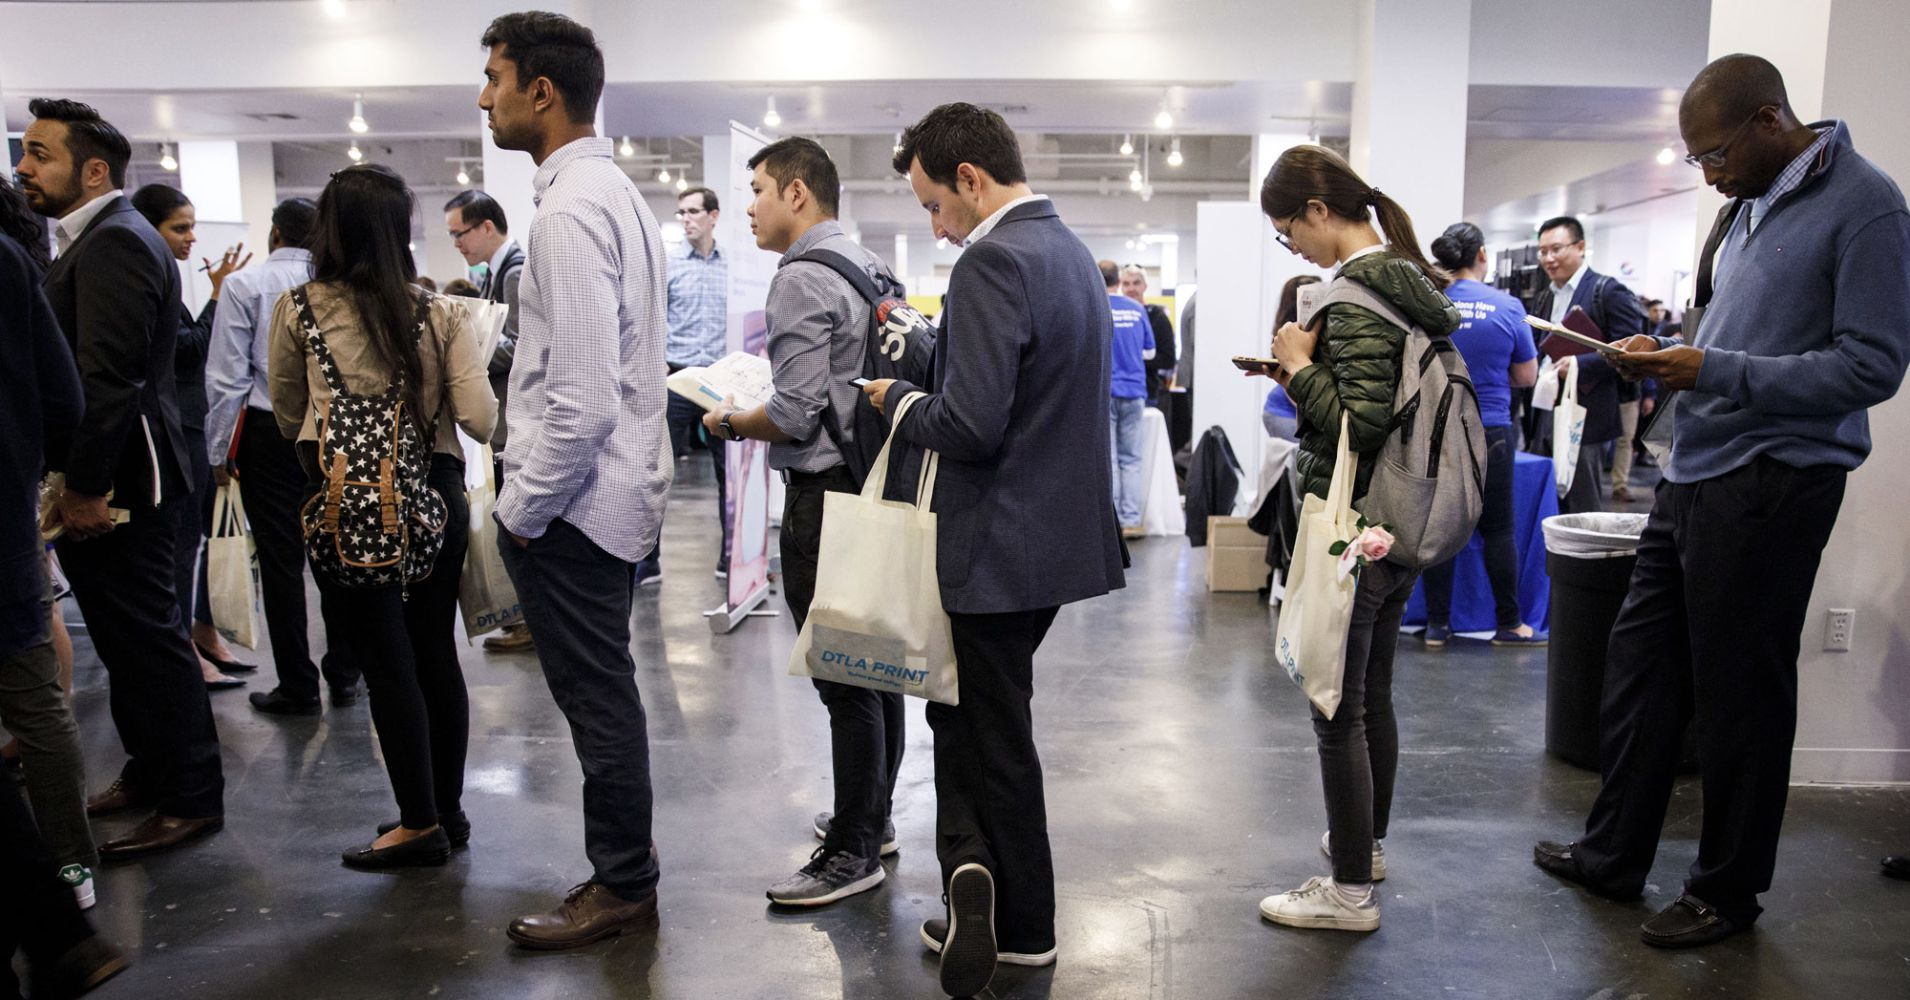 Companies are hiring! Here's how to get a foot in the door